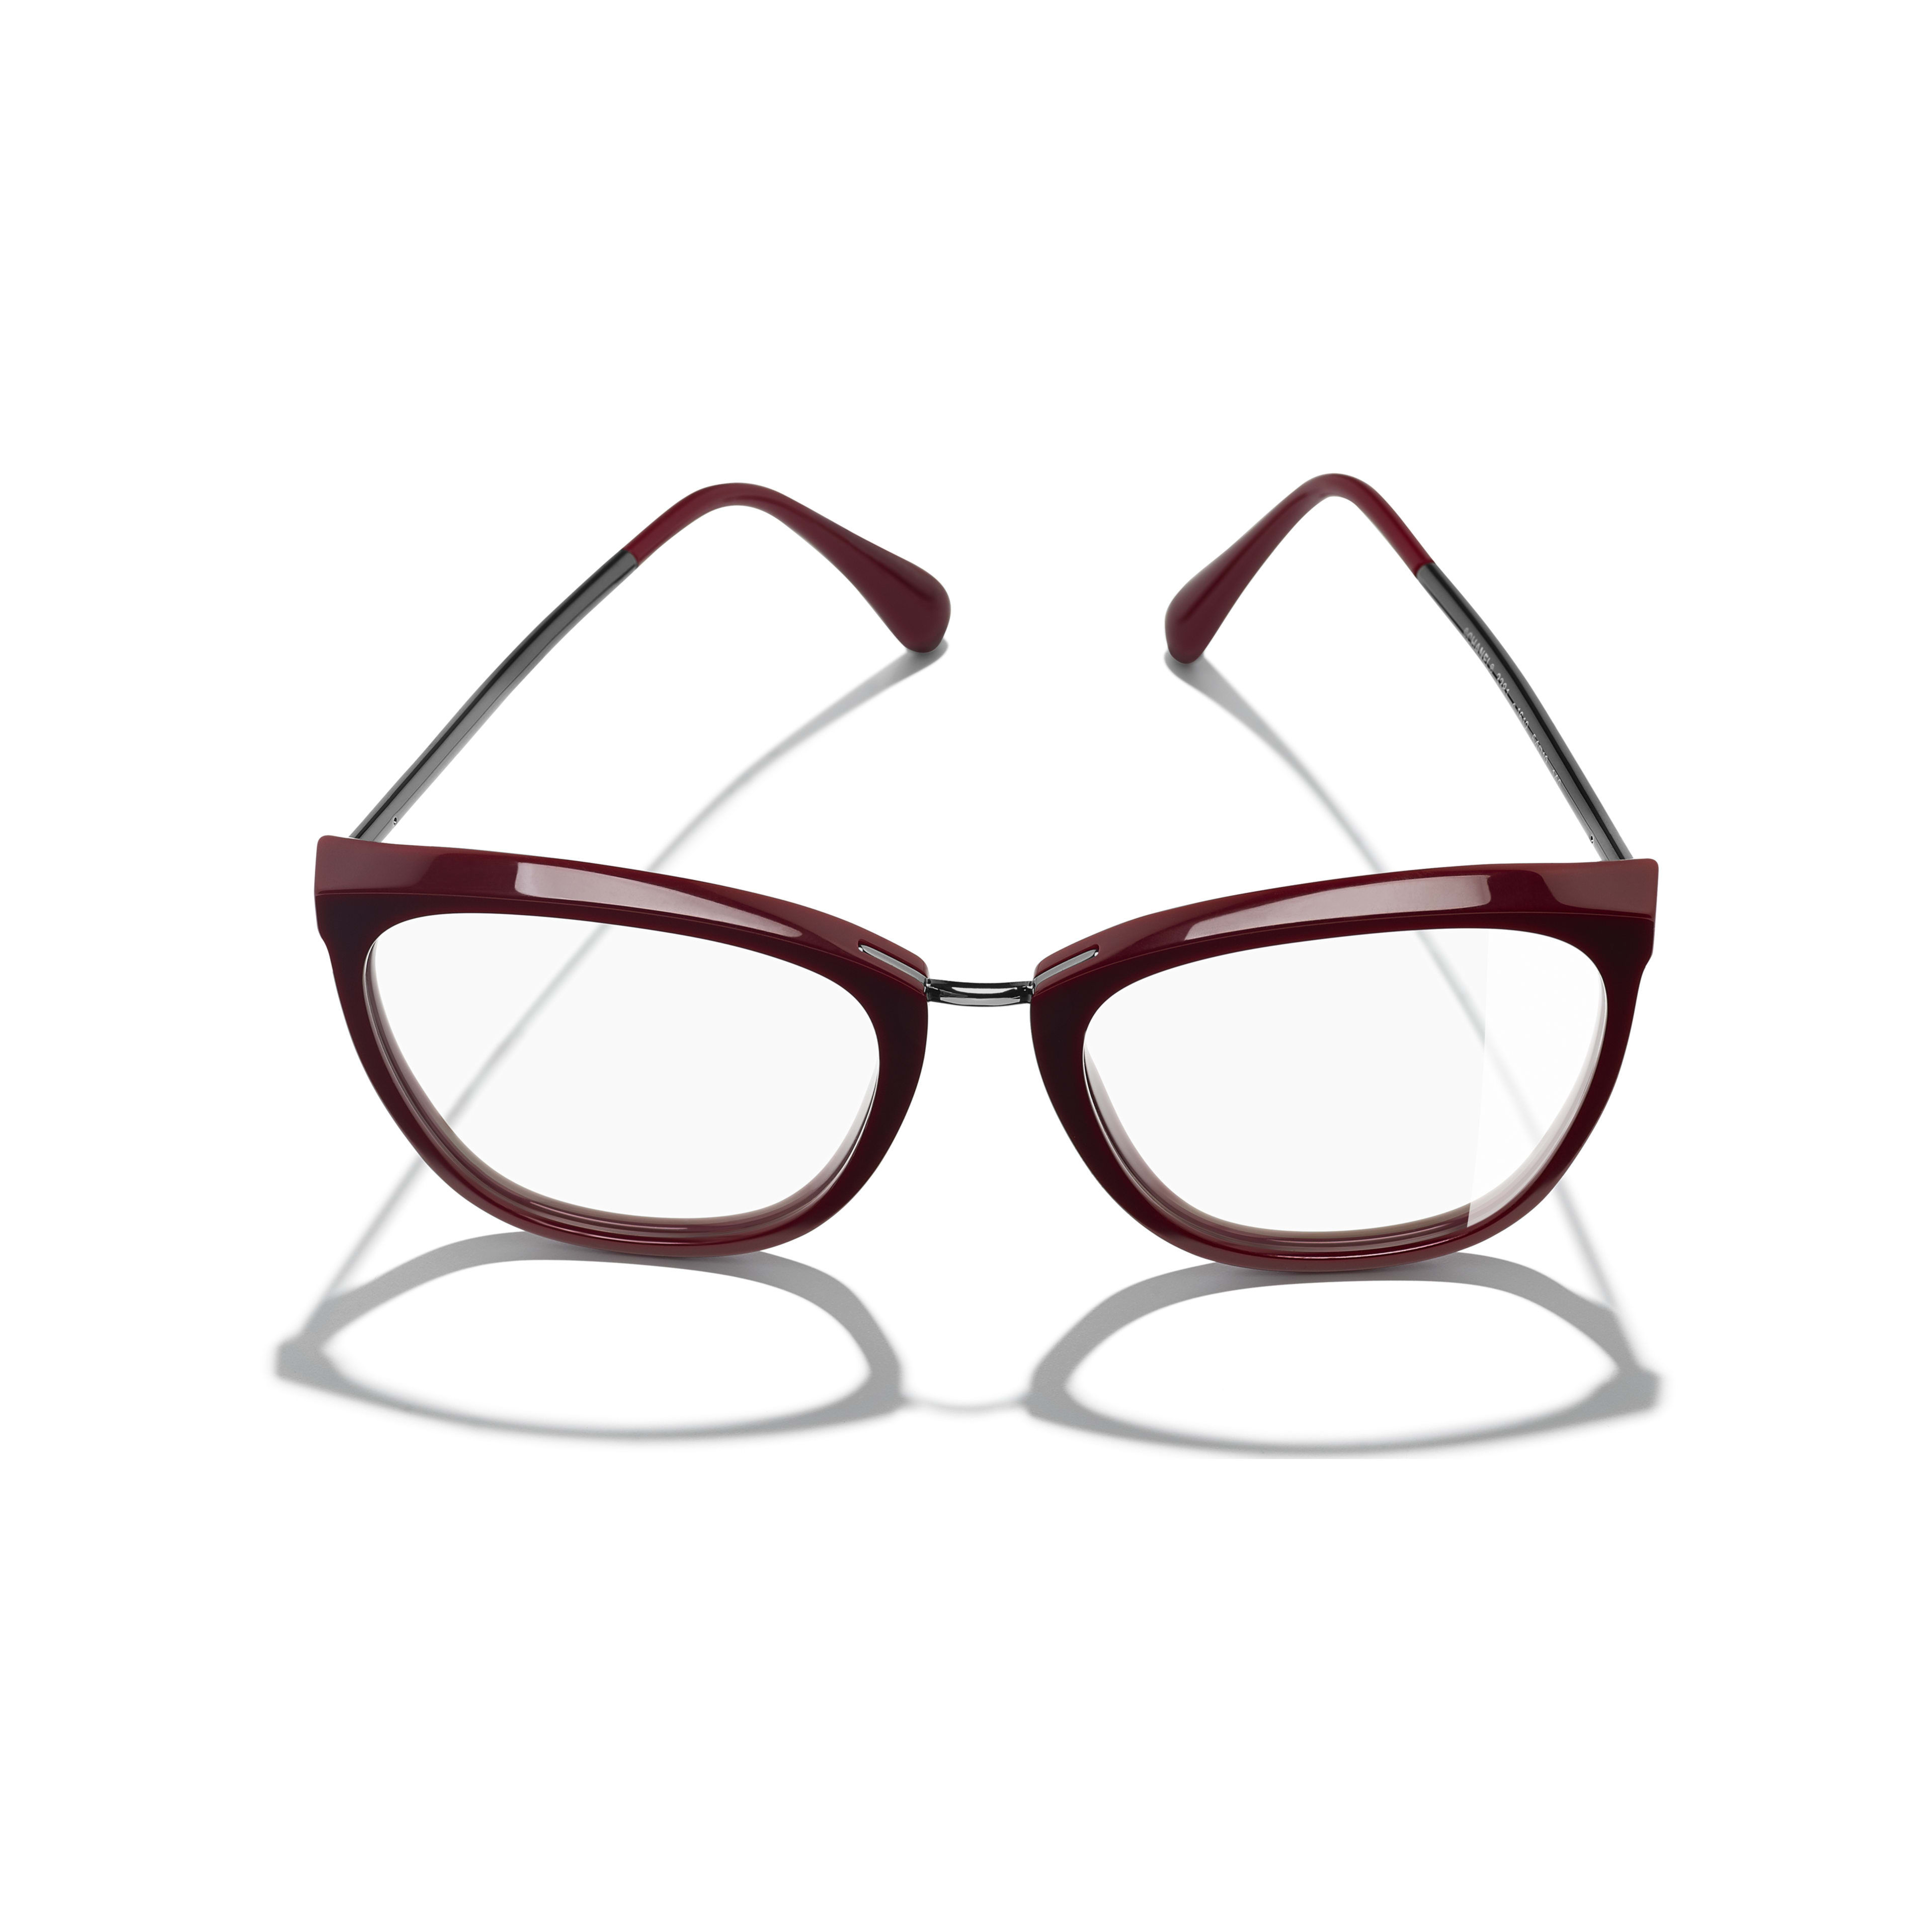 Butterfly Eyeglasses - Dark Red - Acetate & Metal - Extra view - see full sized version